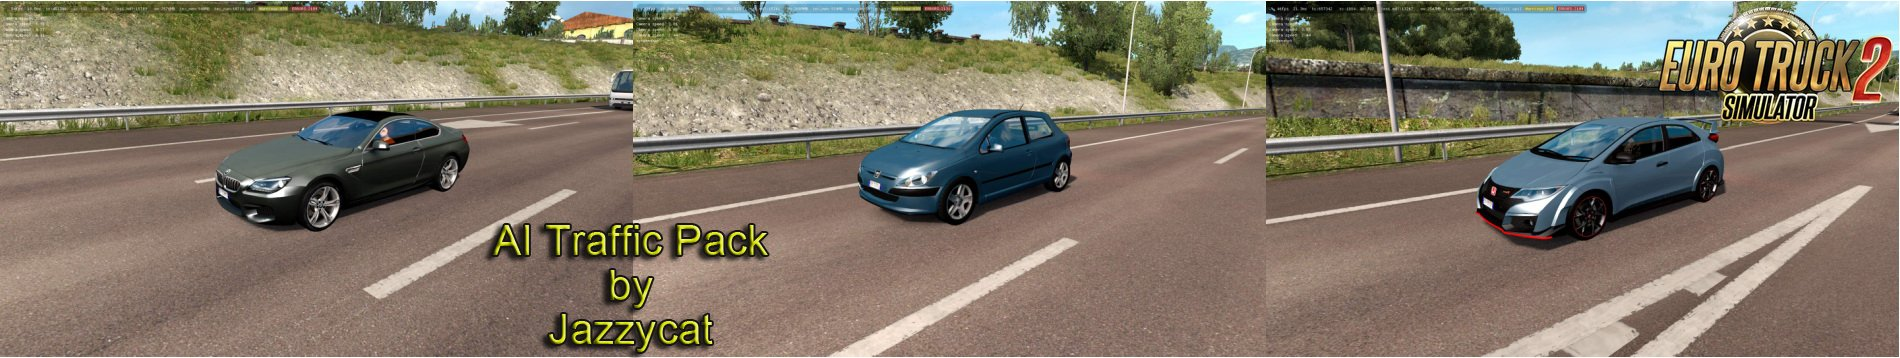 AI Traffic Pack v9.0 by Jazzycat